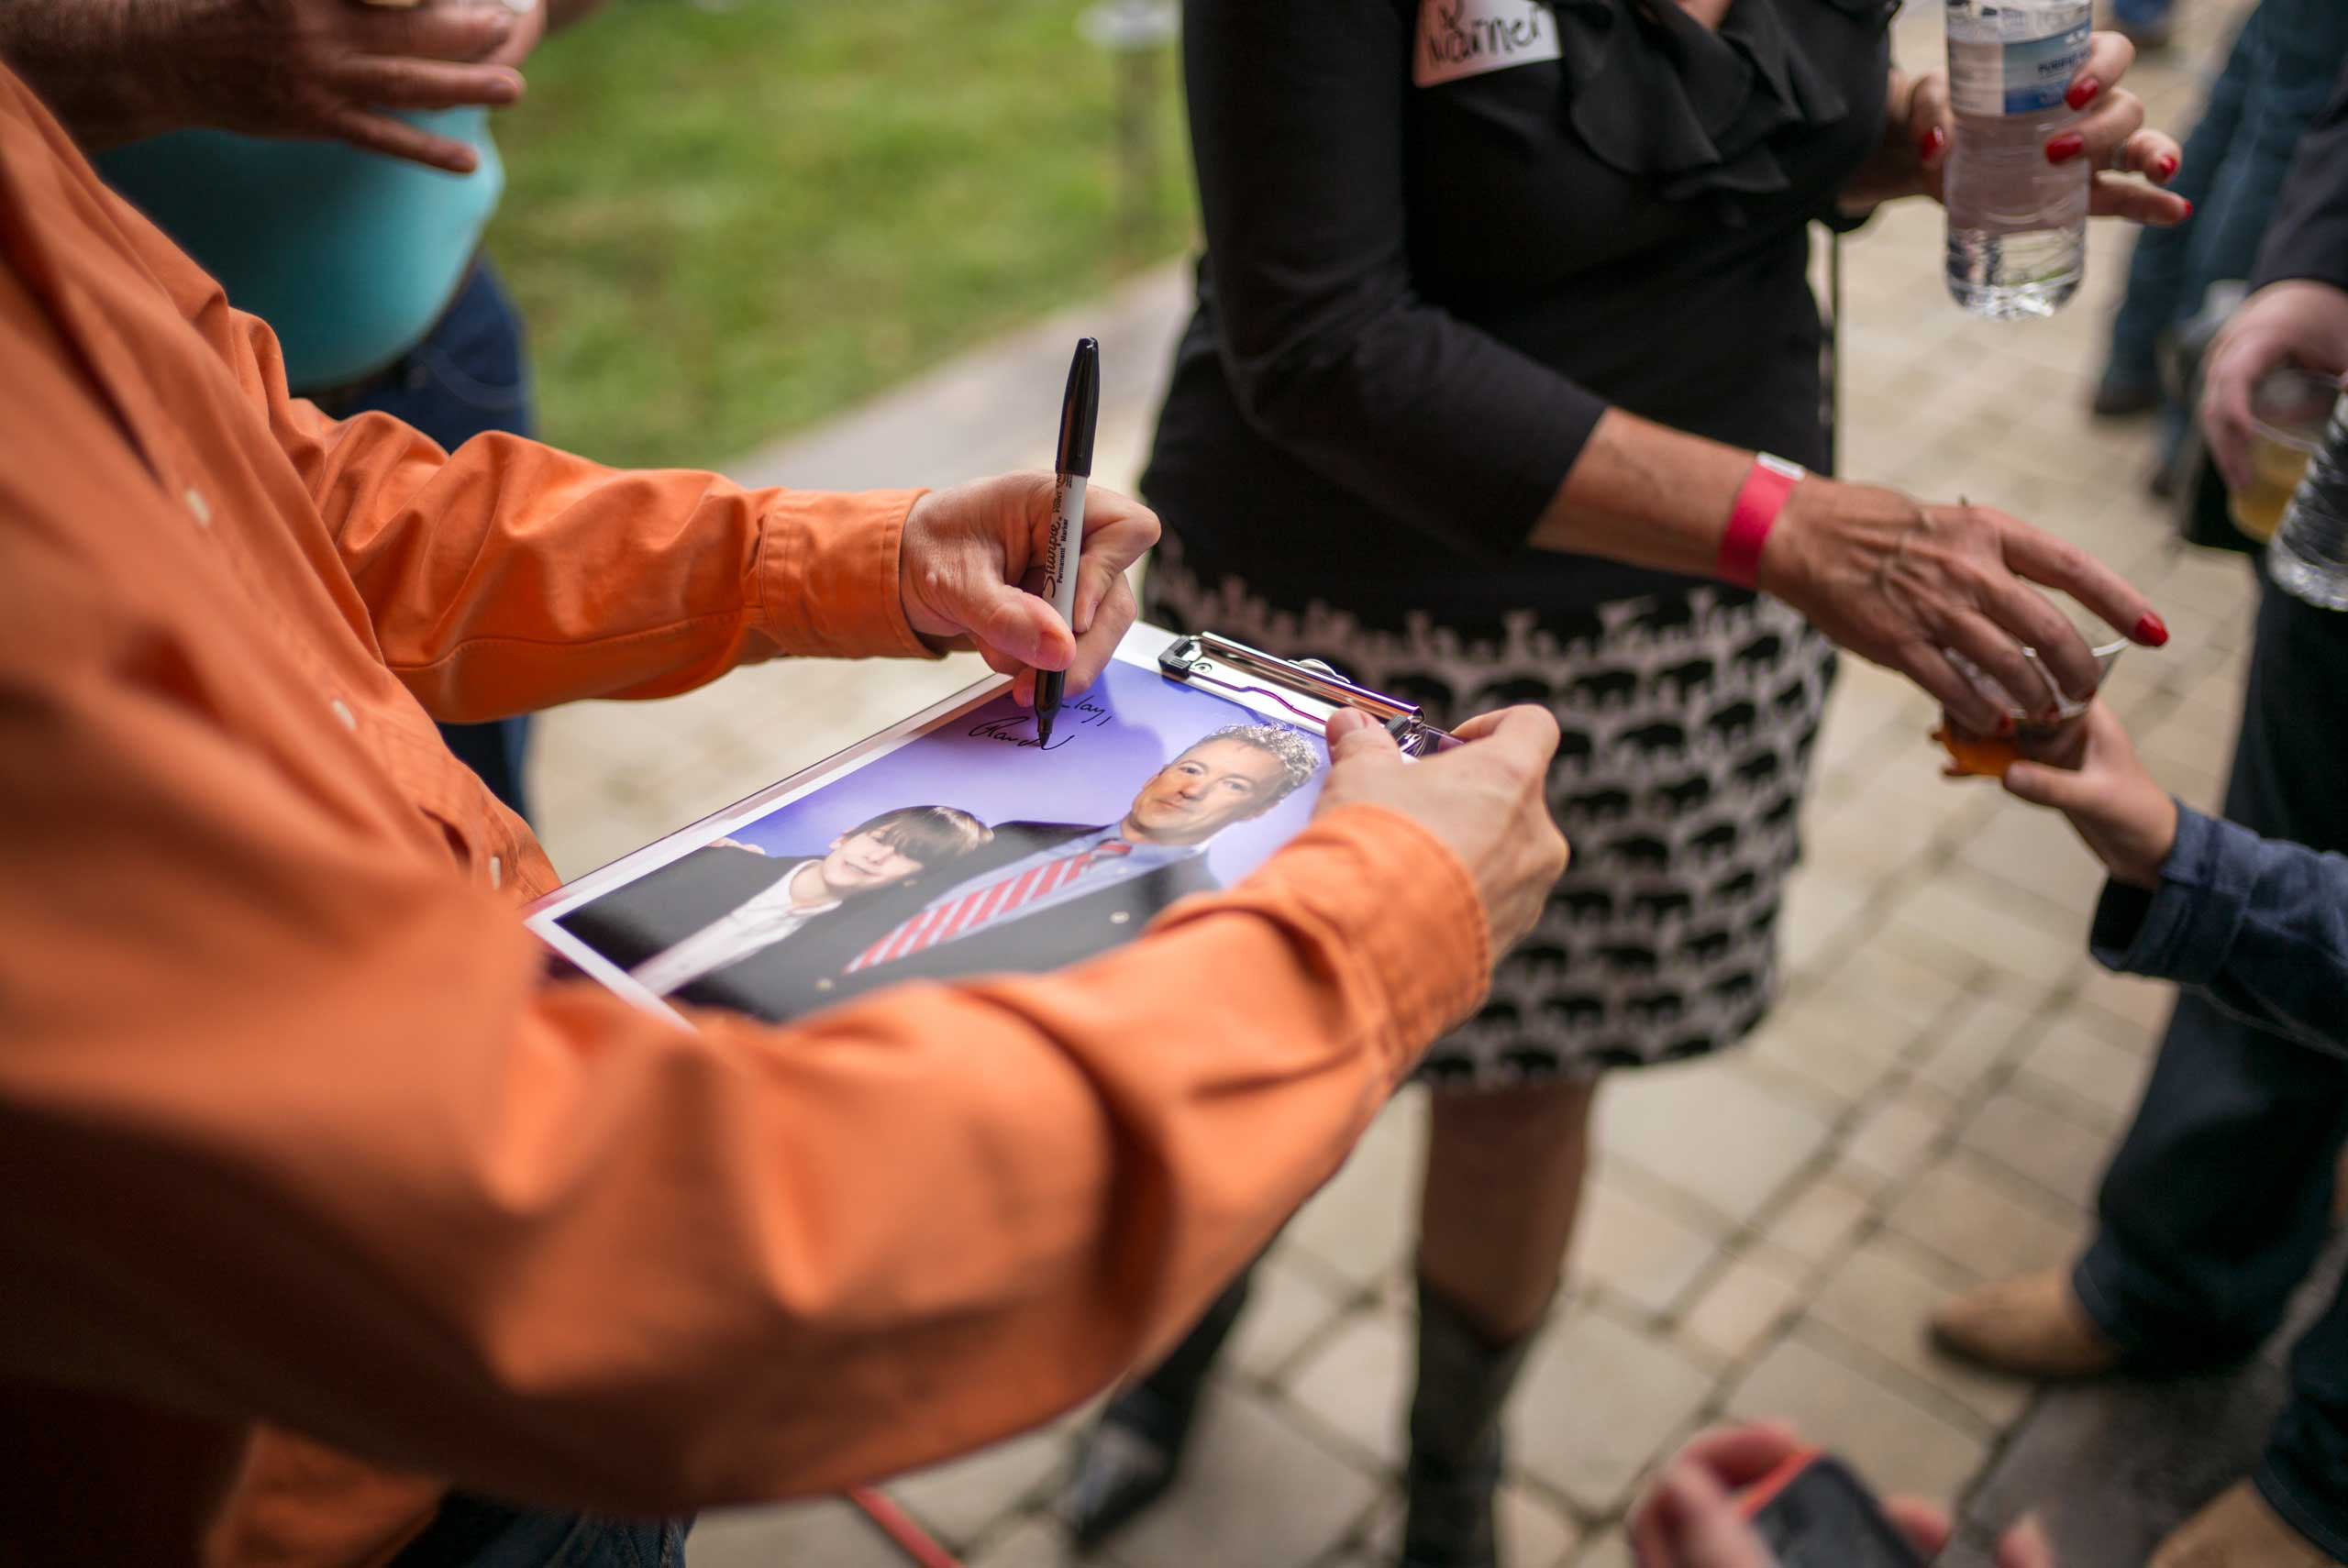 Senator Rand Paul attends a BBQ event at the Donnelly Barn in Bowling Green, Ky. on Oct. 12th, 2014.